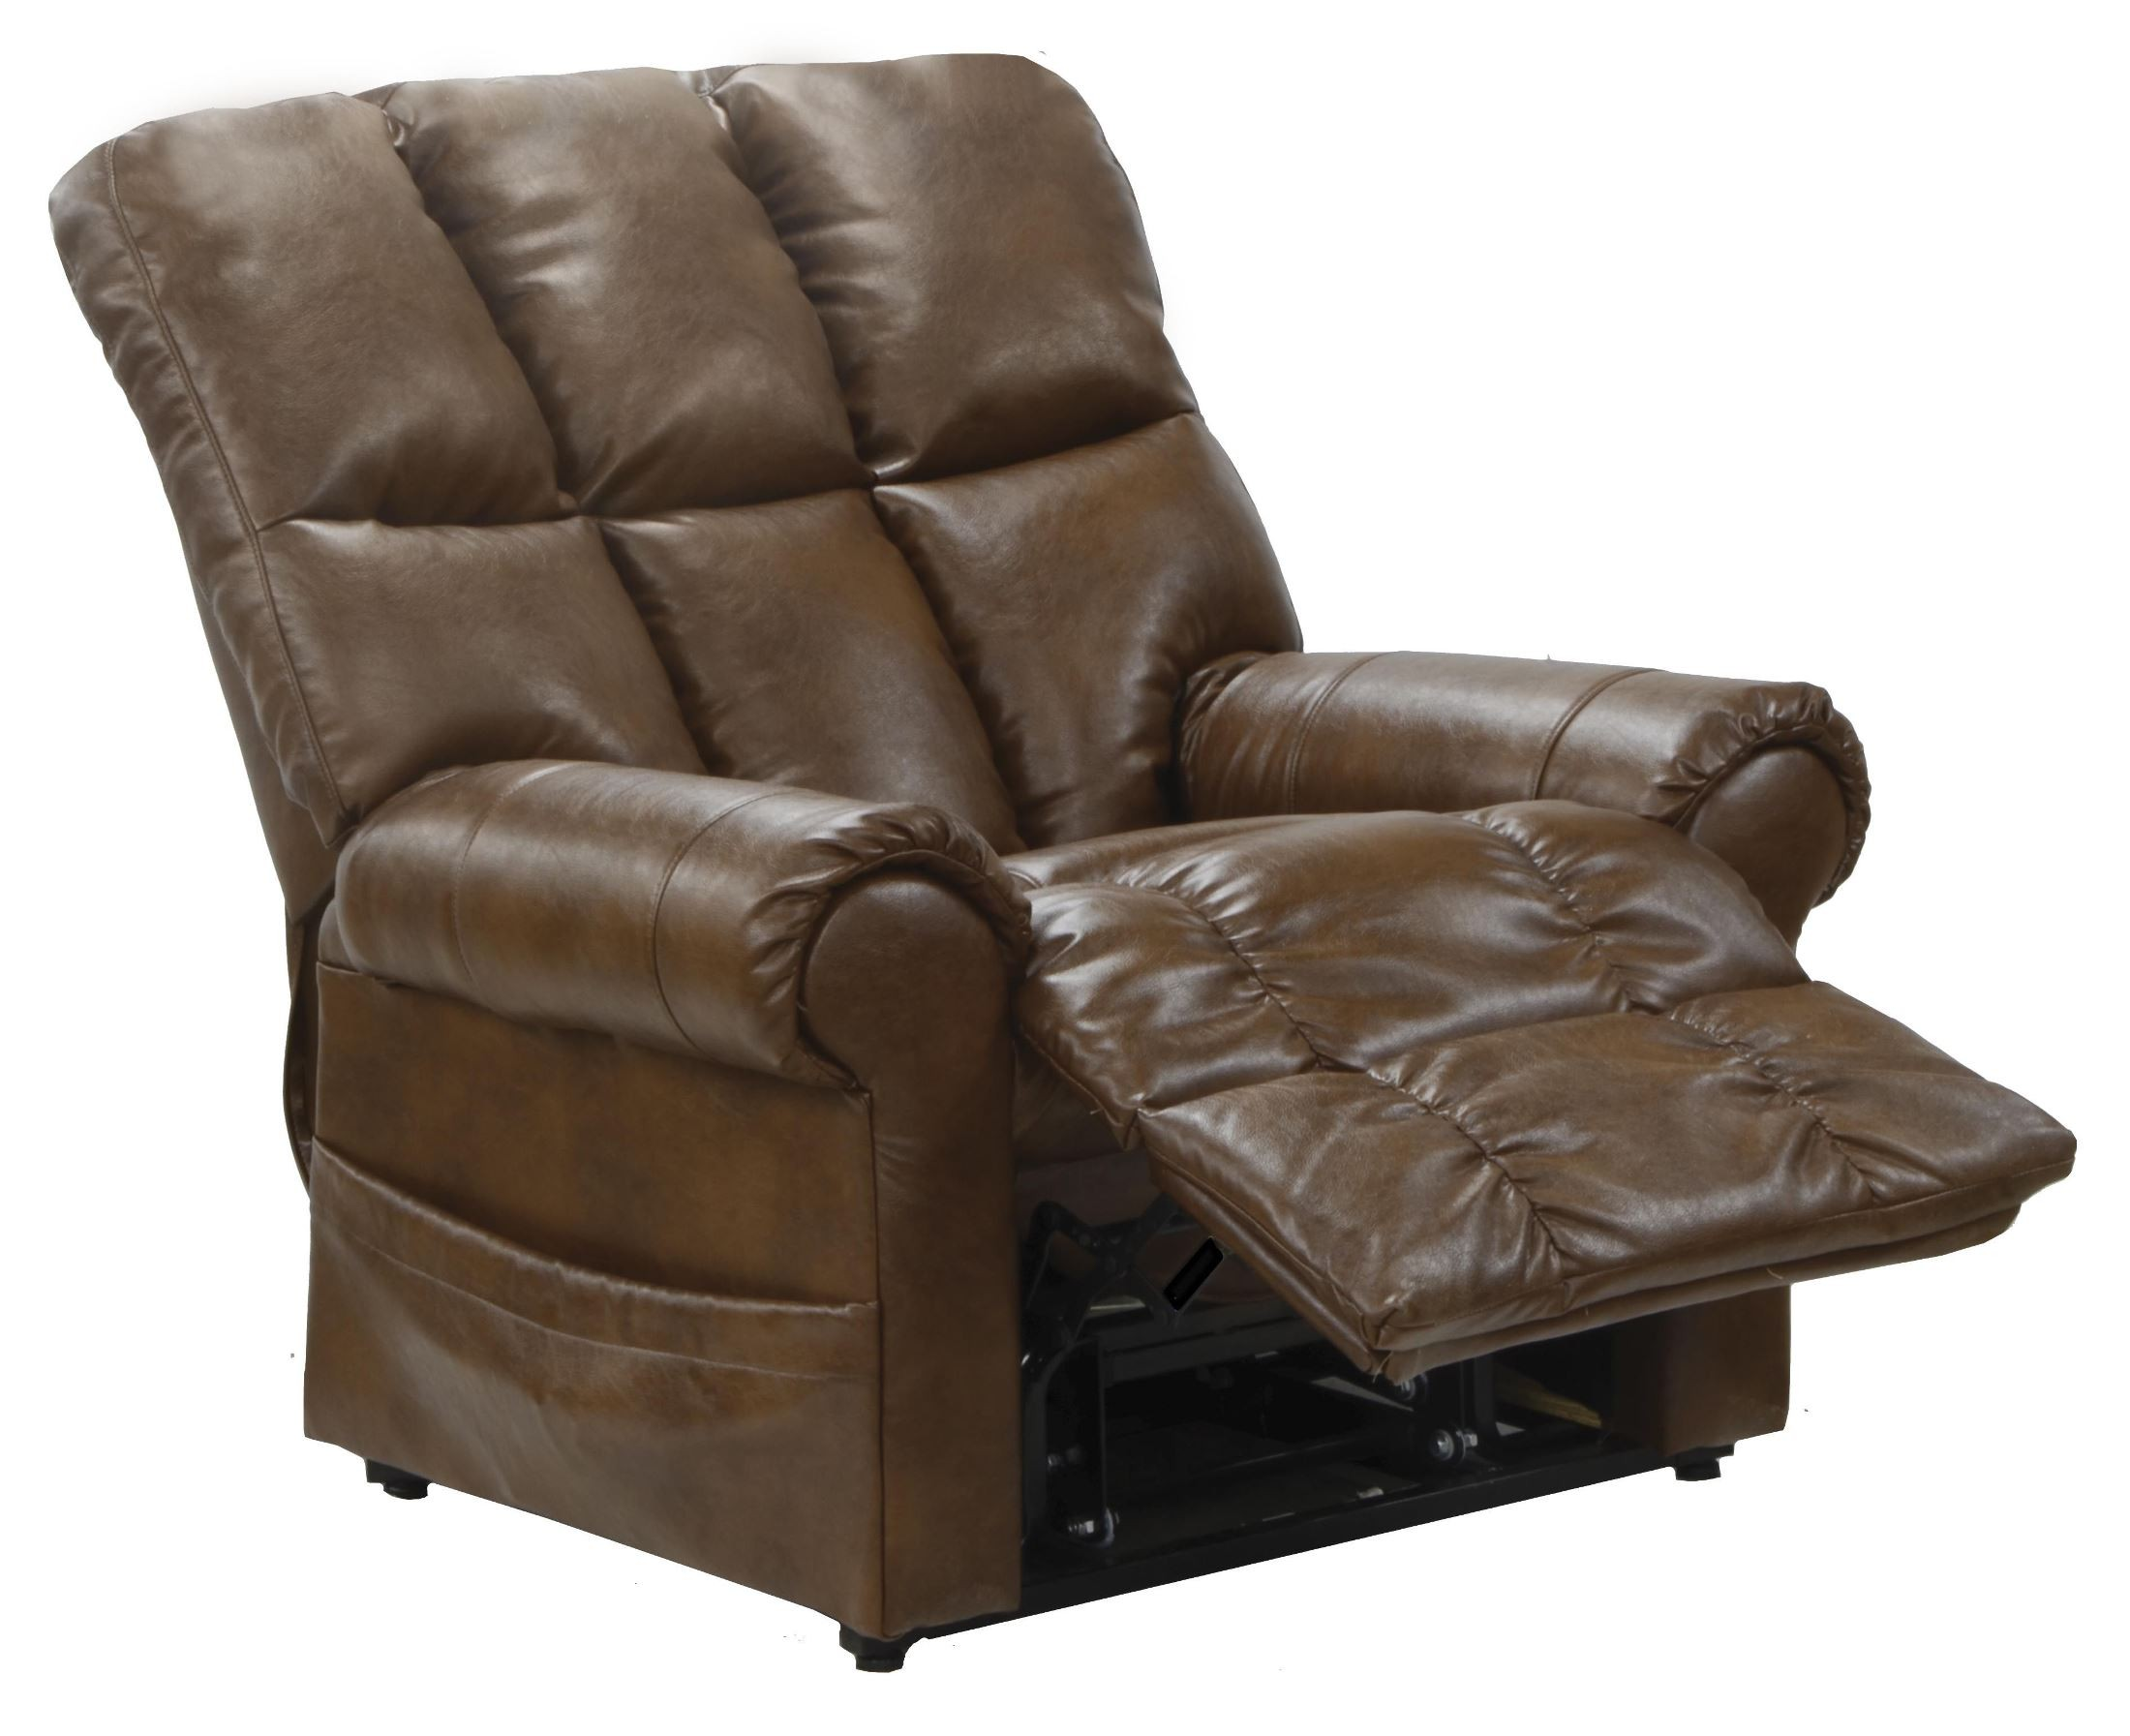 Lift Chairs Recliners Stallworth Chestnut Bonded Leather Power Lift Recliner